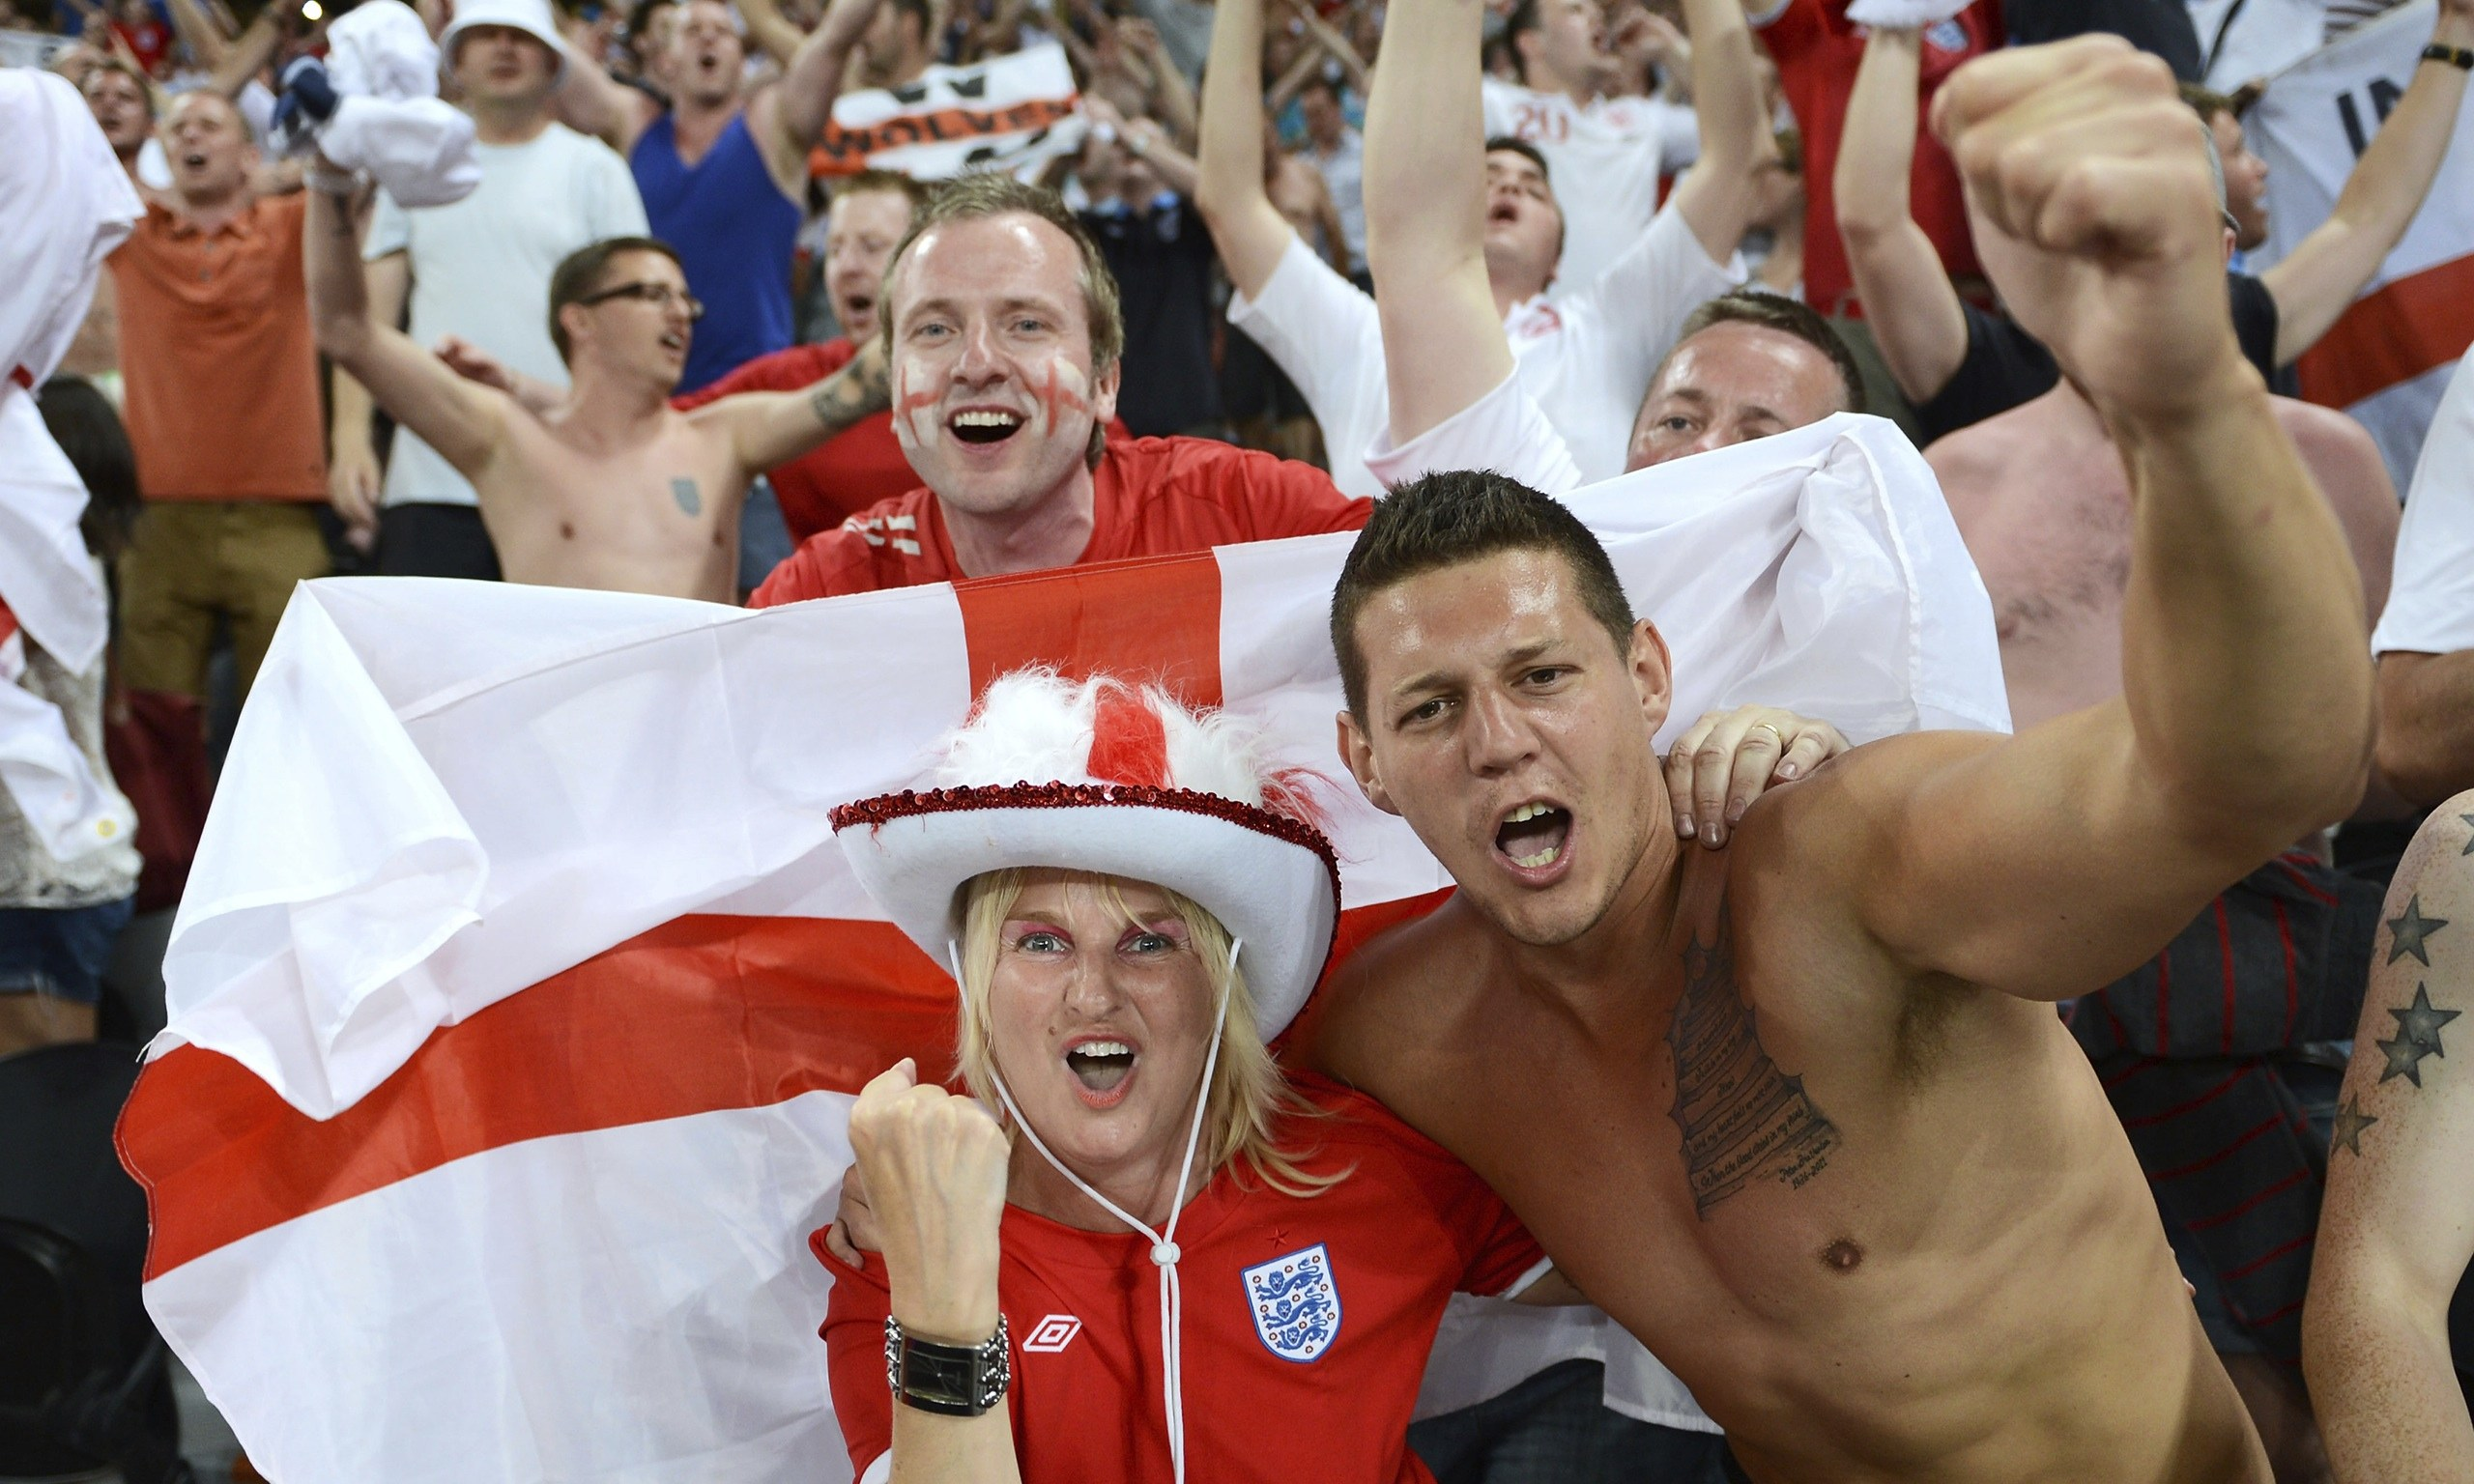 England fans prepare for World Cup trip of a lifetime ...